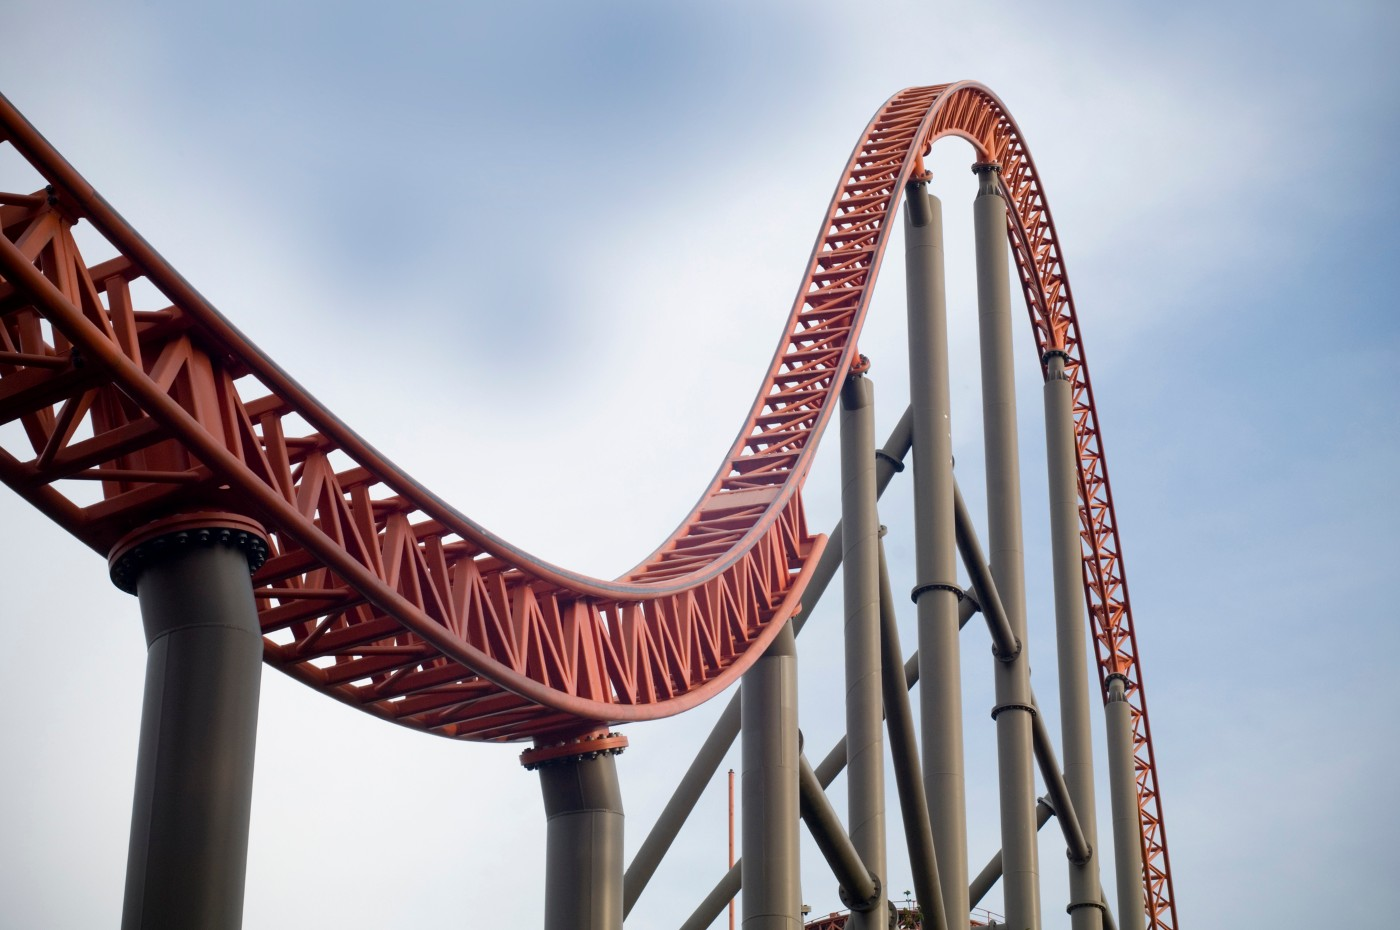 https://tickertapecdn.tdameritrade.com/assets/images/pages/md/Rollercoaster: Volatility indicators